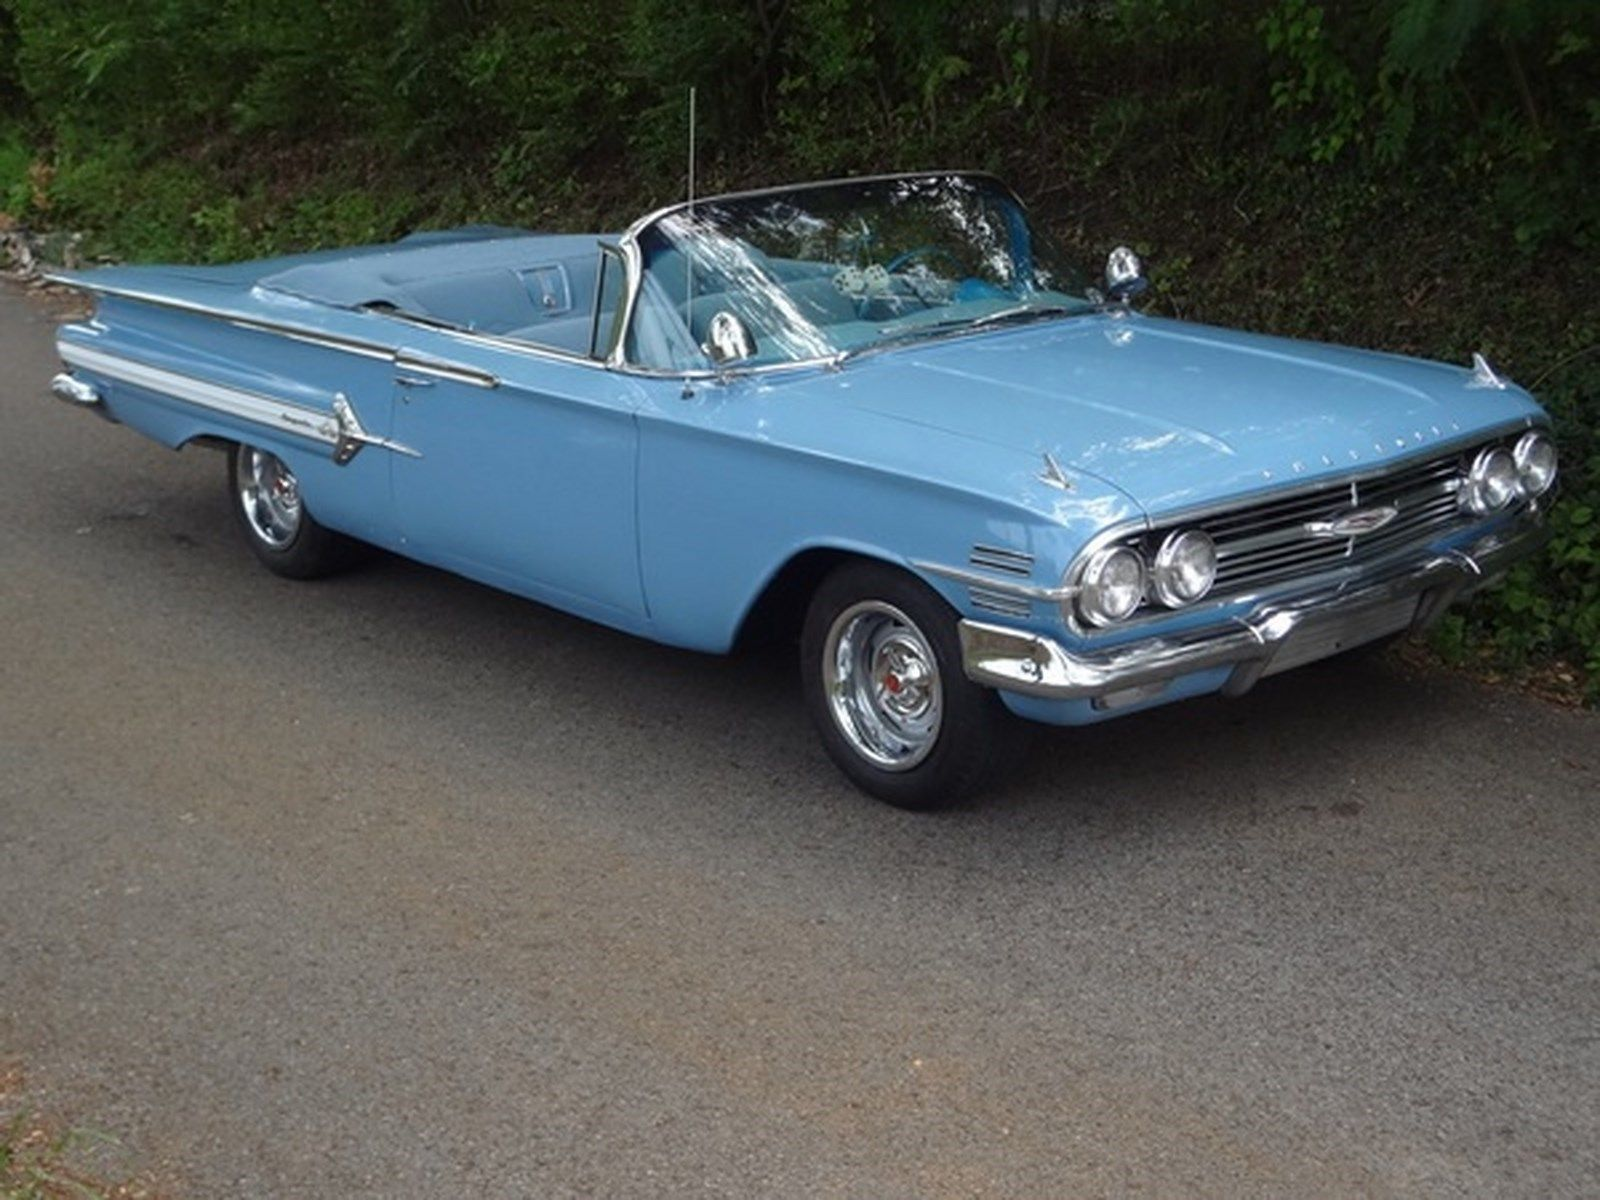 1960 Chevrolet Impala Convertible Cars Chevy And Gm Pinterest